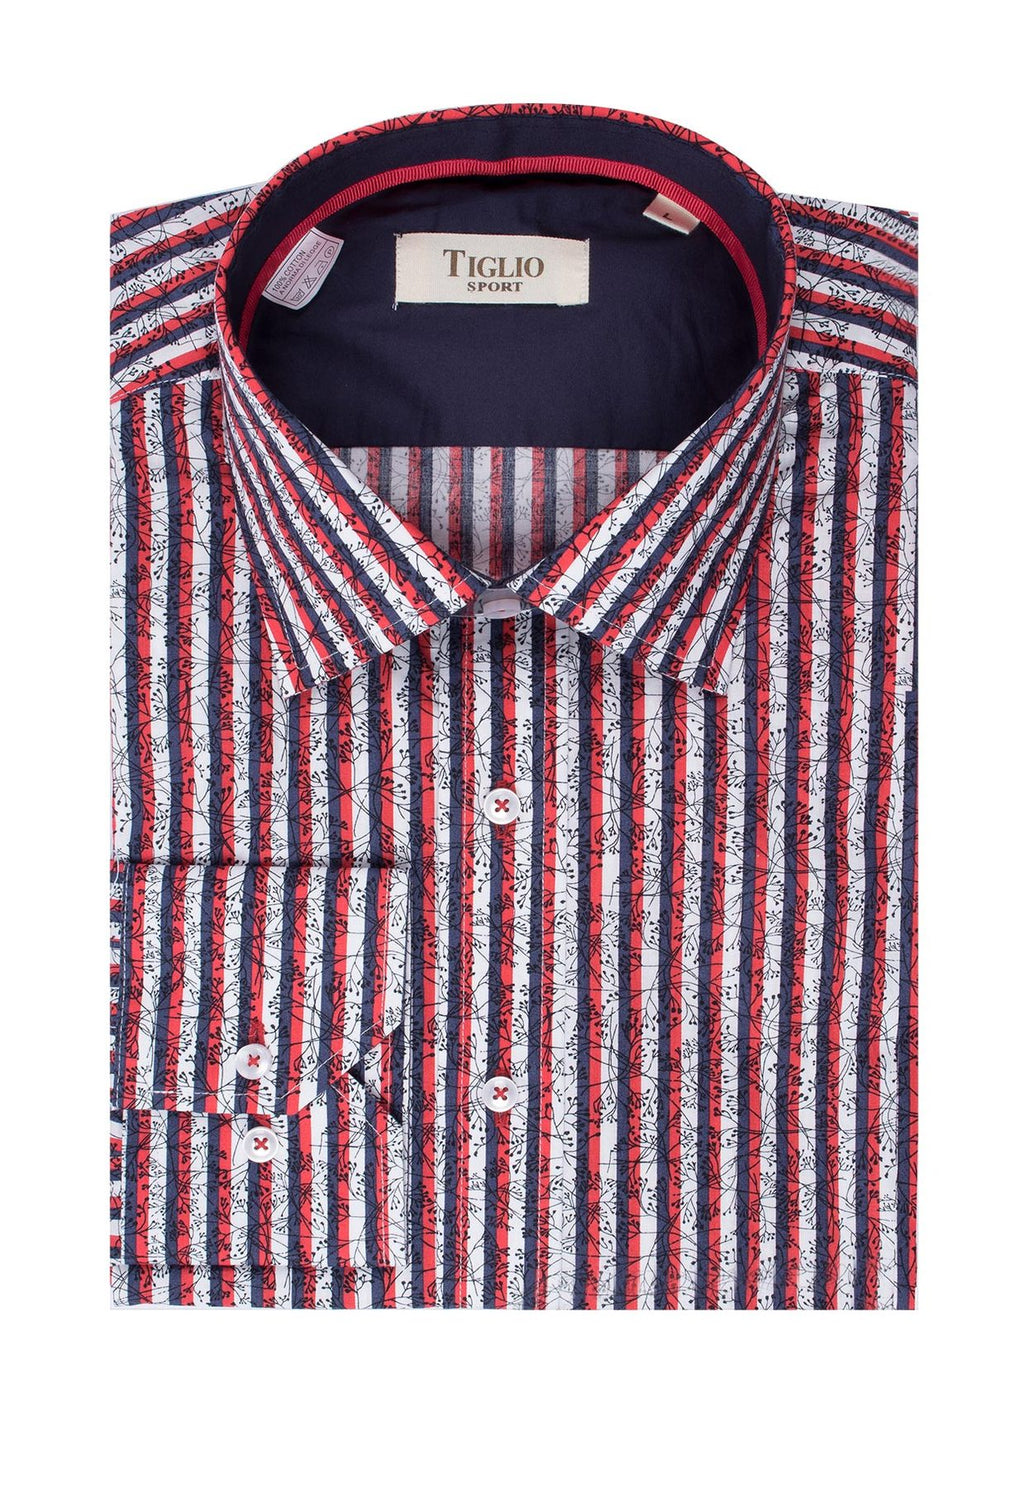 Tiglio Sport Red, Navy and White Stripe with Black Floral Design Modern Fit Sport Shirt SP1003